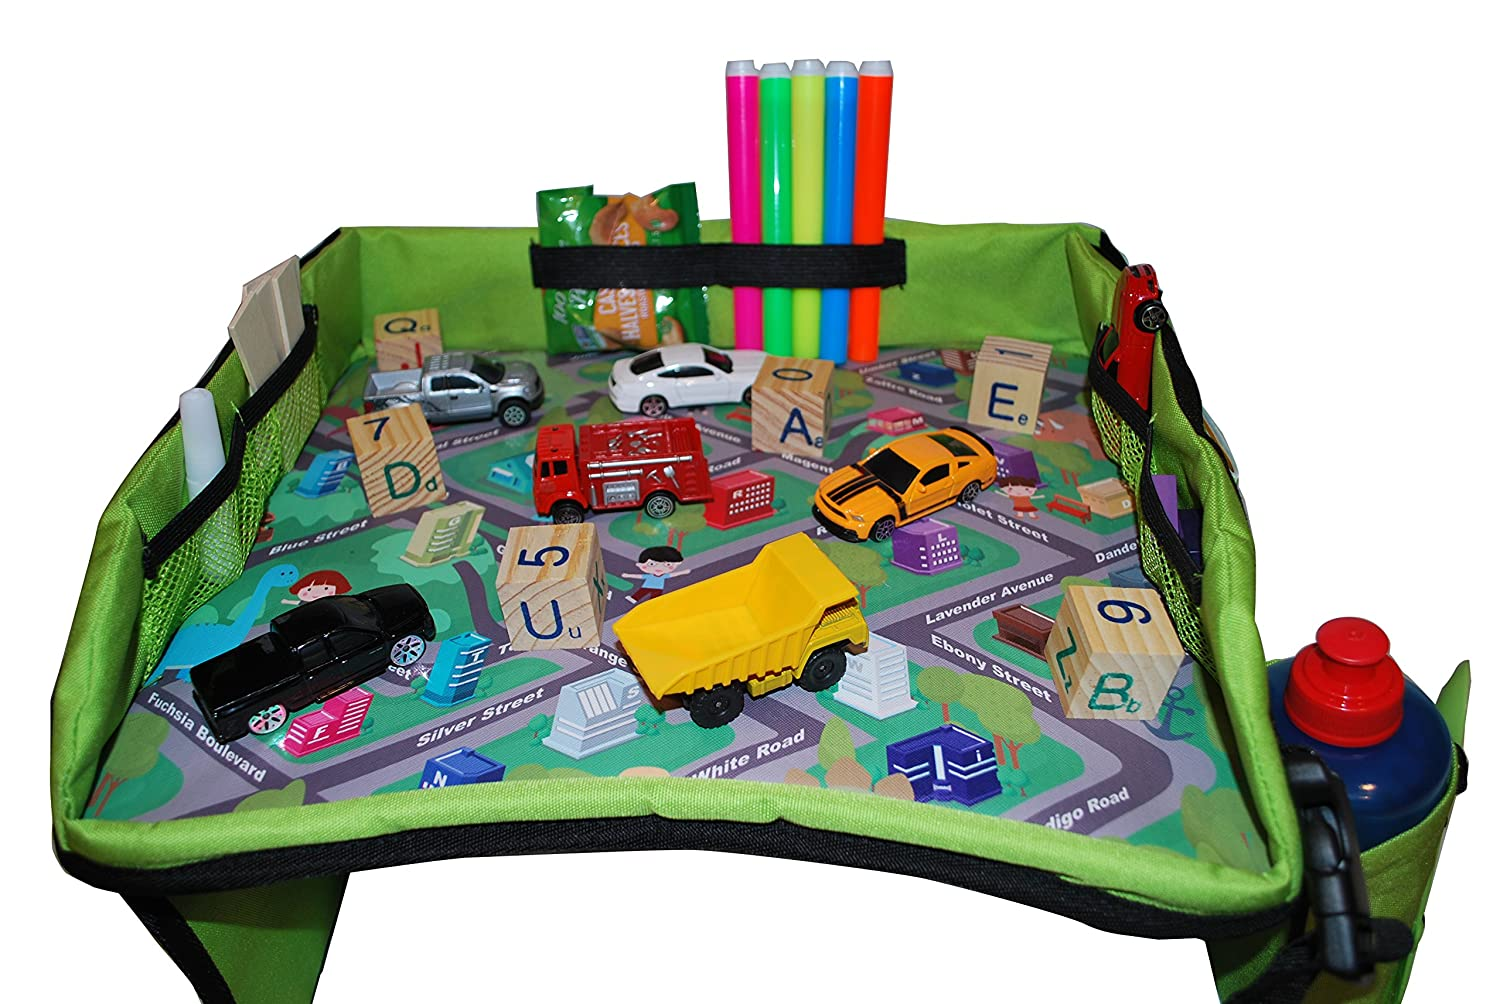 Train Carry Bag Included Car Road Trips Perfect Activity /& Snack Tray and Bus Journeys Kids Travel Plane Play /& Learn Lap Tray